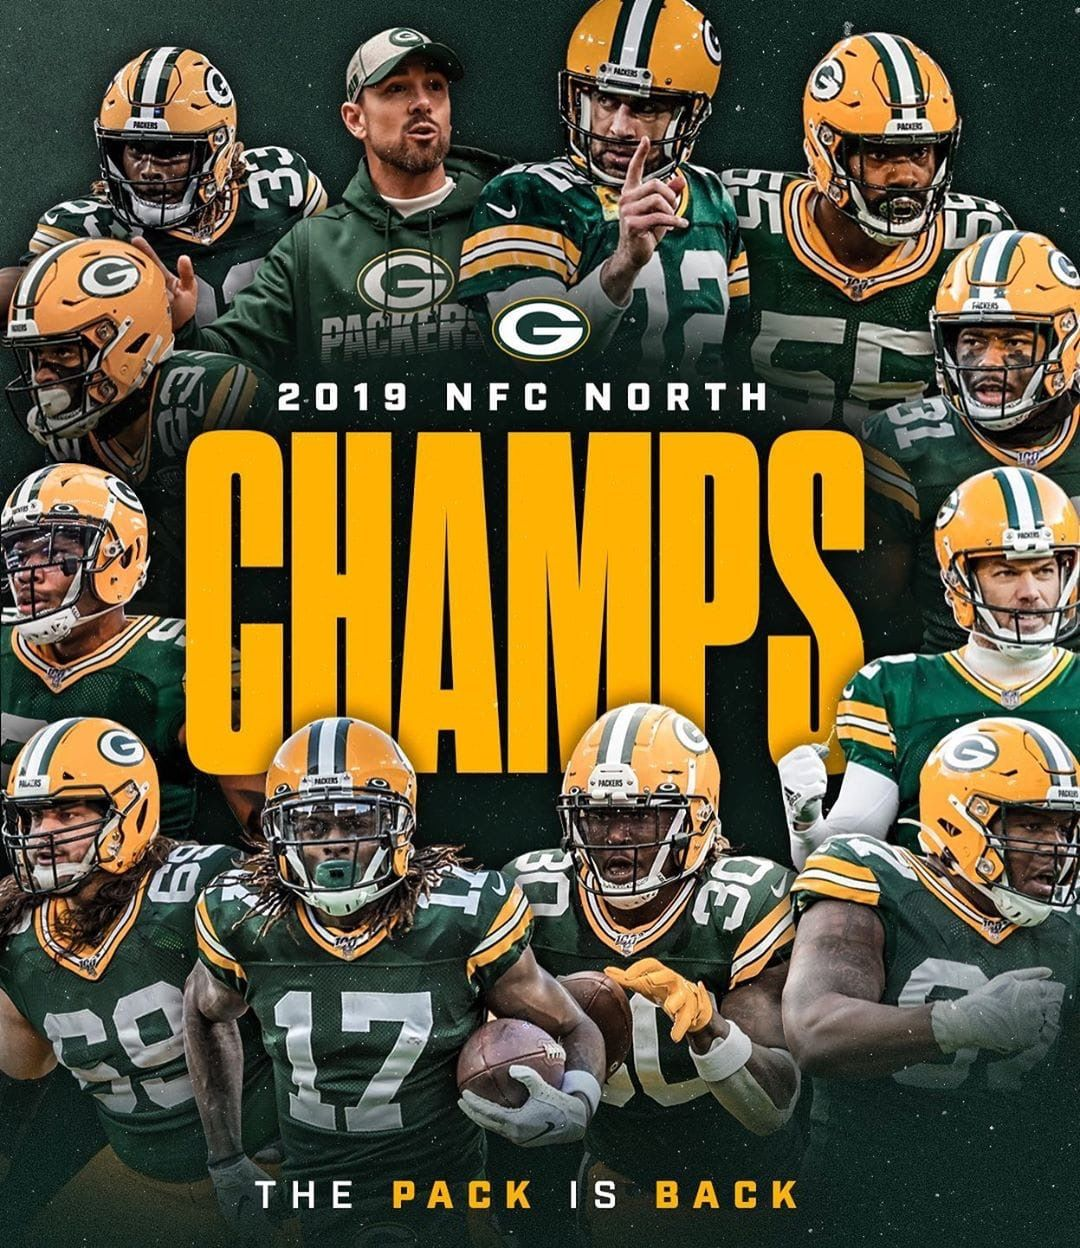 Pin By Patricia Raether On Packers Wrold Green Bay Packers Wallpaper Green Bay Packers Football Green Bay Packers Meme